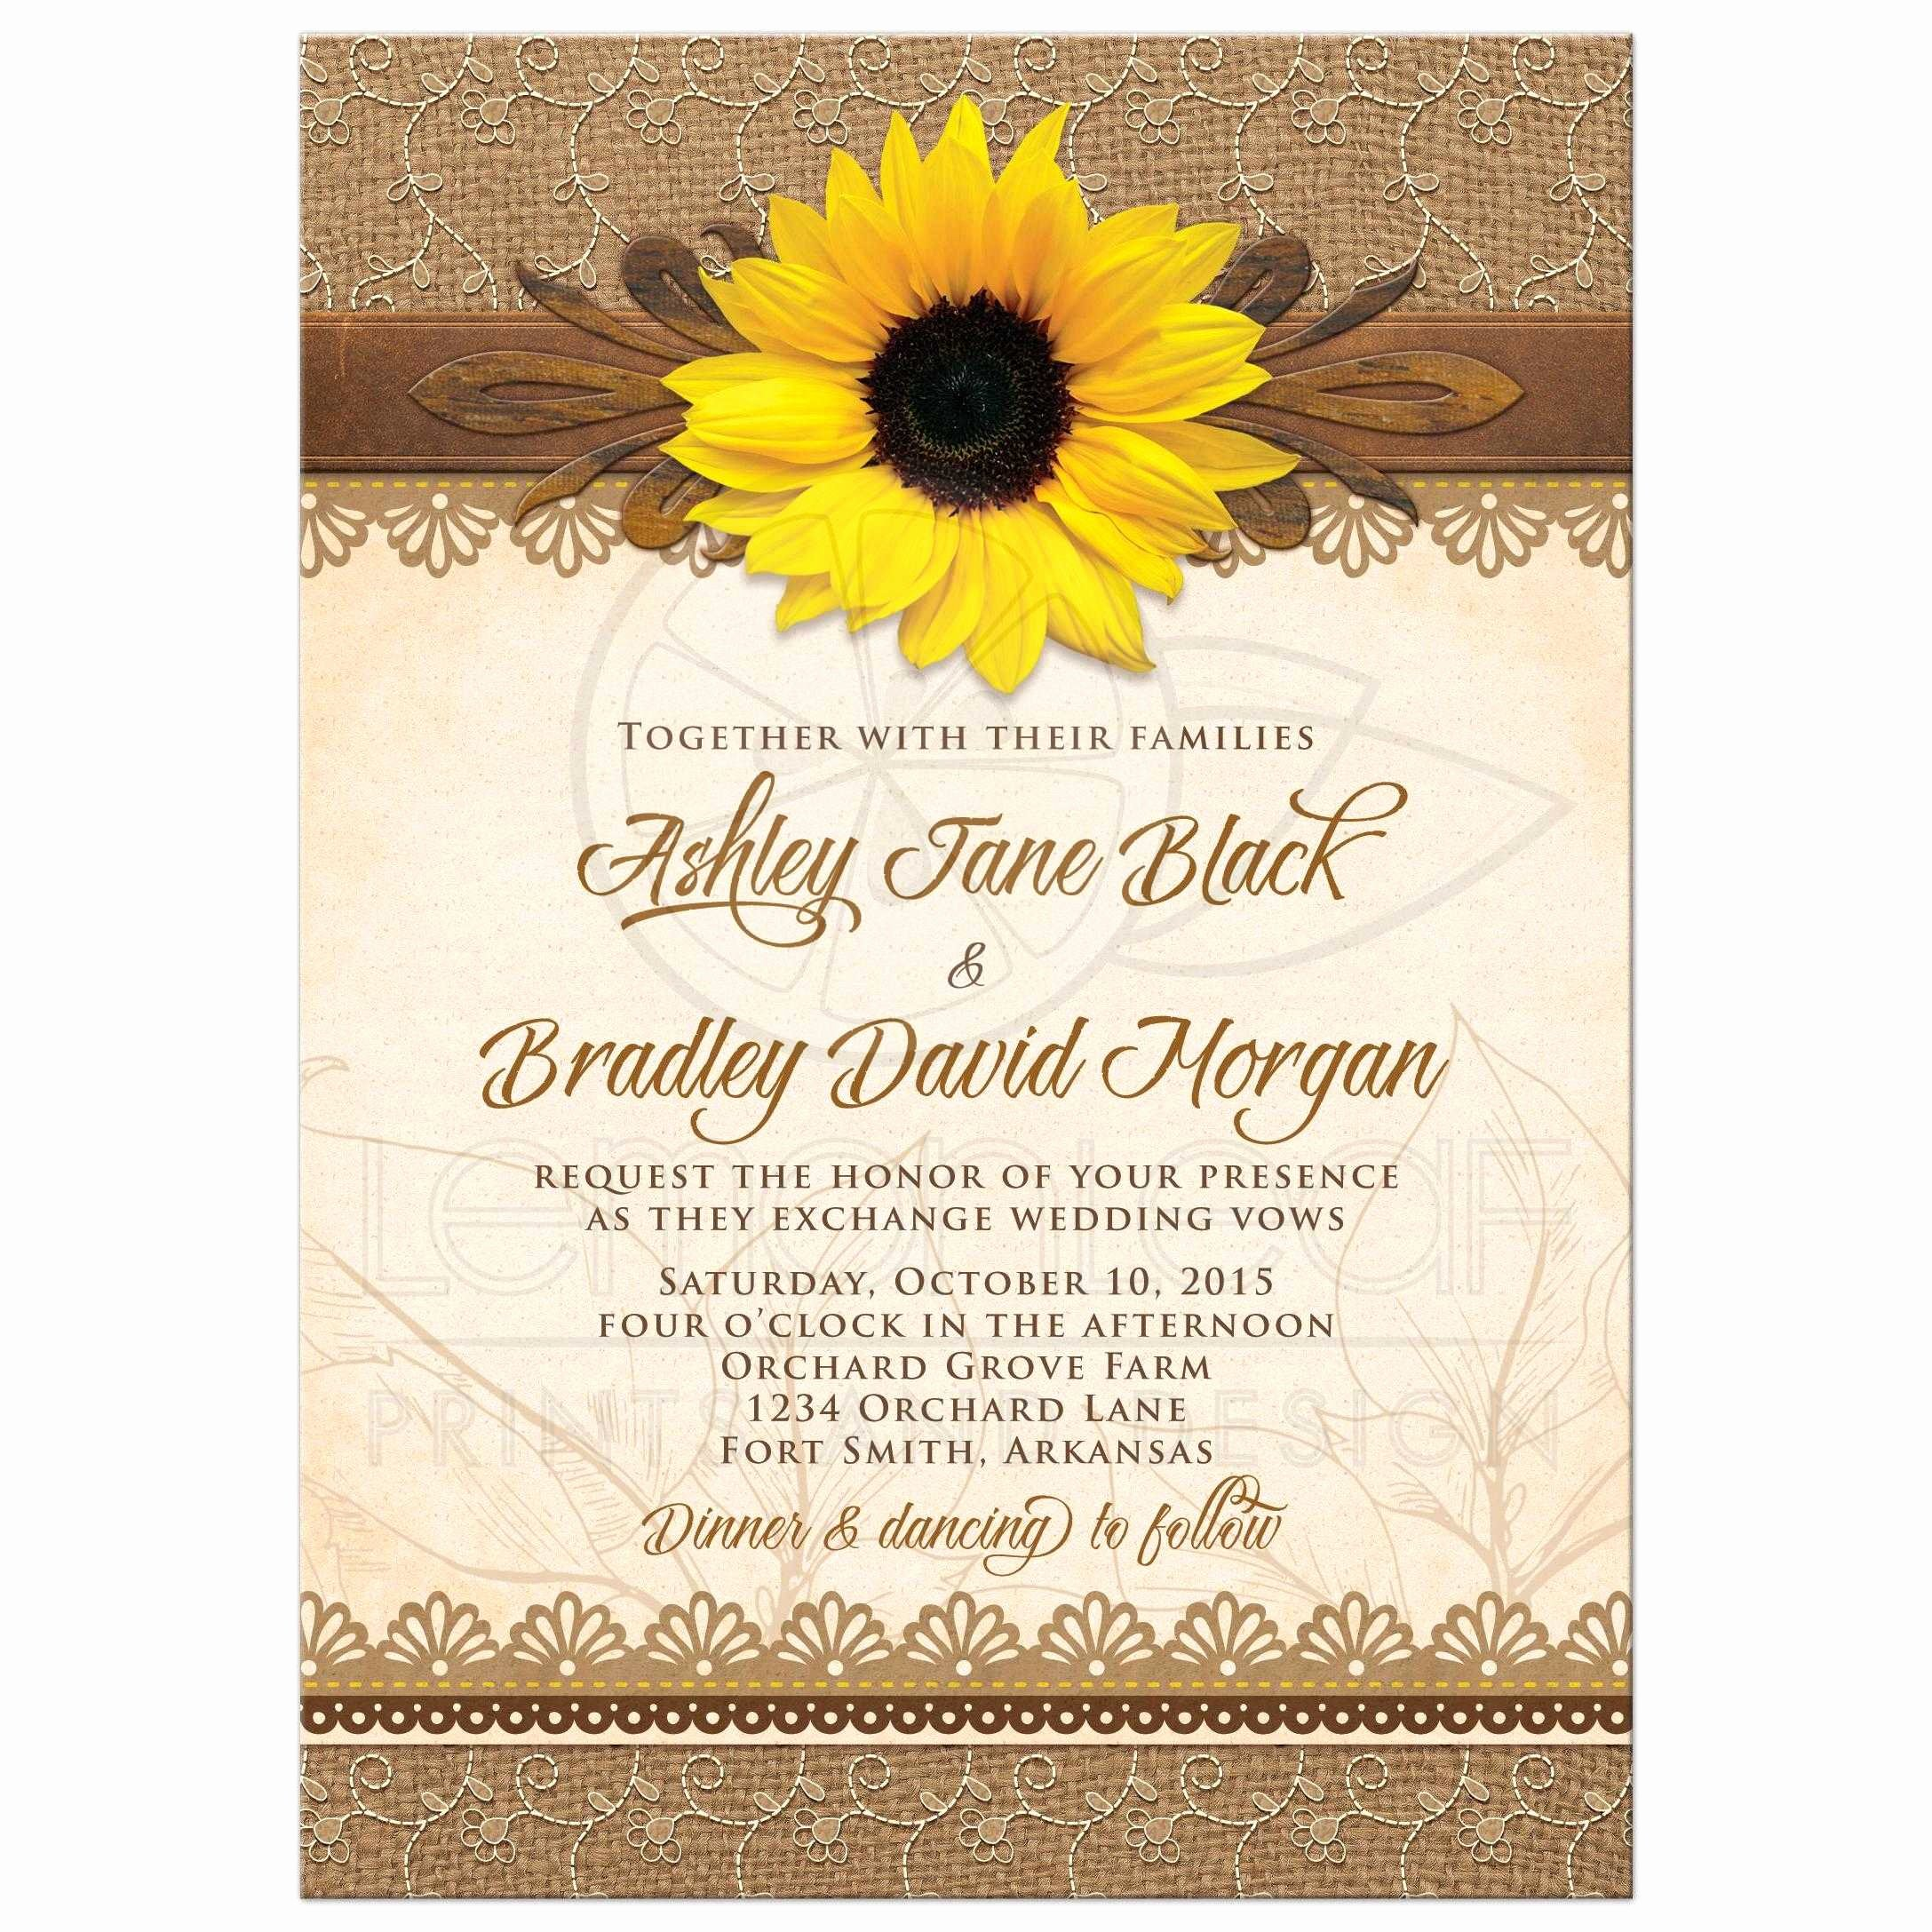 Sunflower Wedding Invitations Templates Beautiful Wedding Invitation Rustic Sunflower Burlap Lace Wood